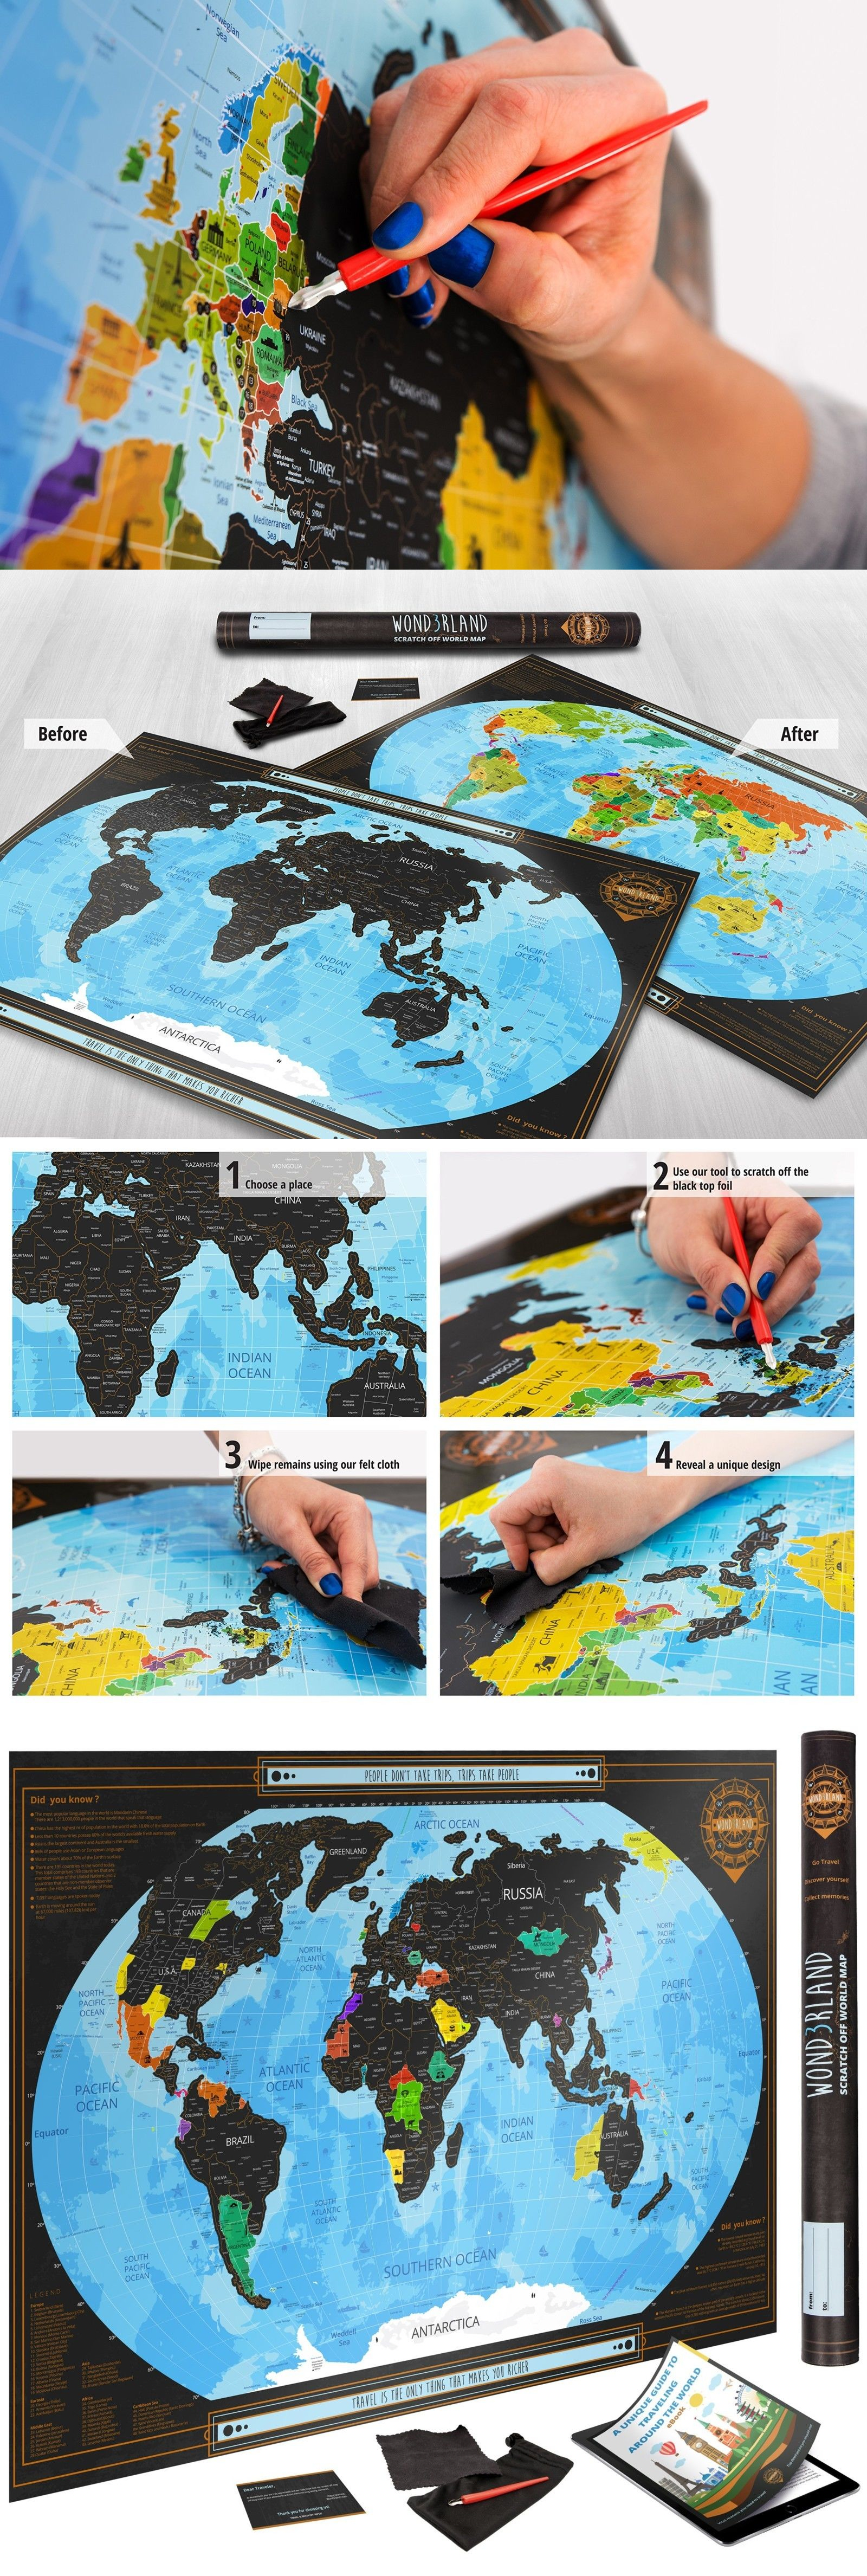 Other travel maps 164807 scratch off world map deluxe 32 x23 wall other travel maps 164807 scratch off world map deluxe 32 x23 wall poster with usa gumiabroncs Image collections